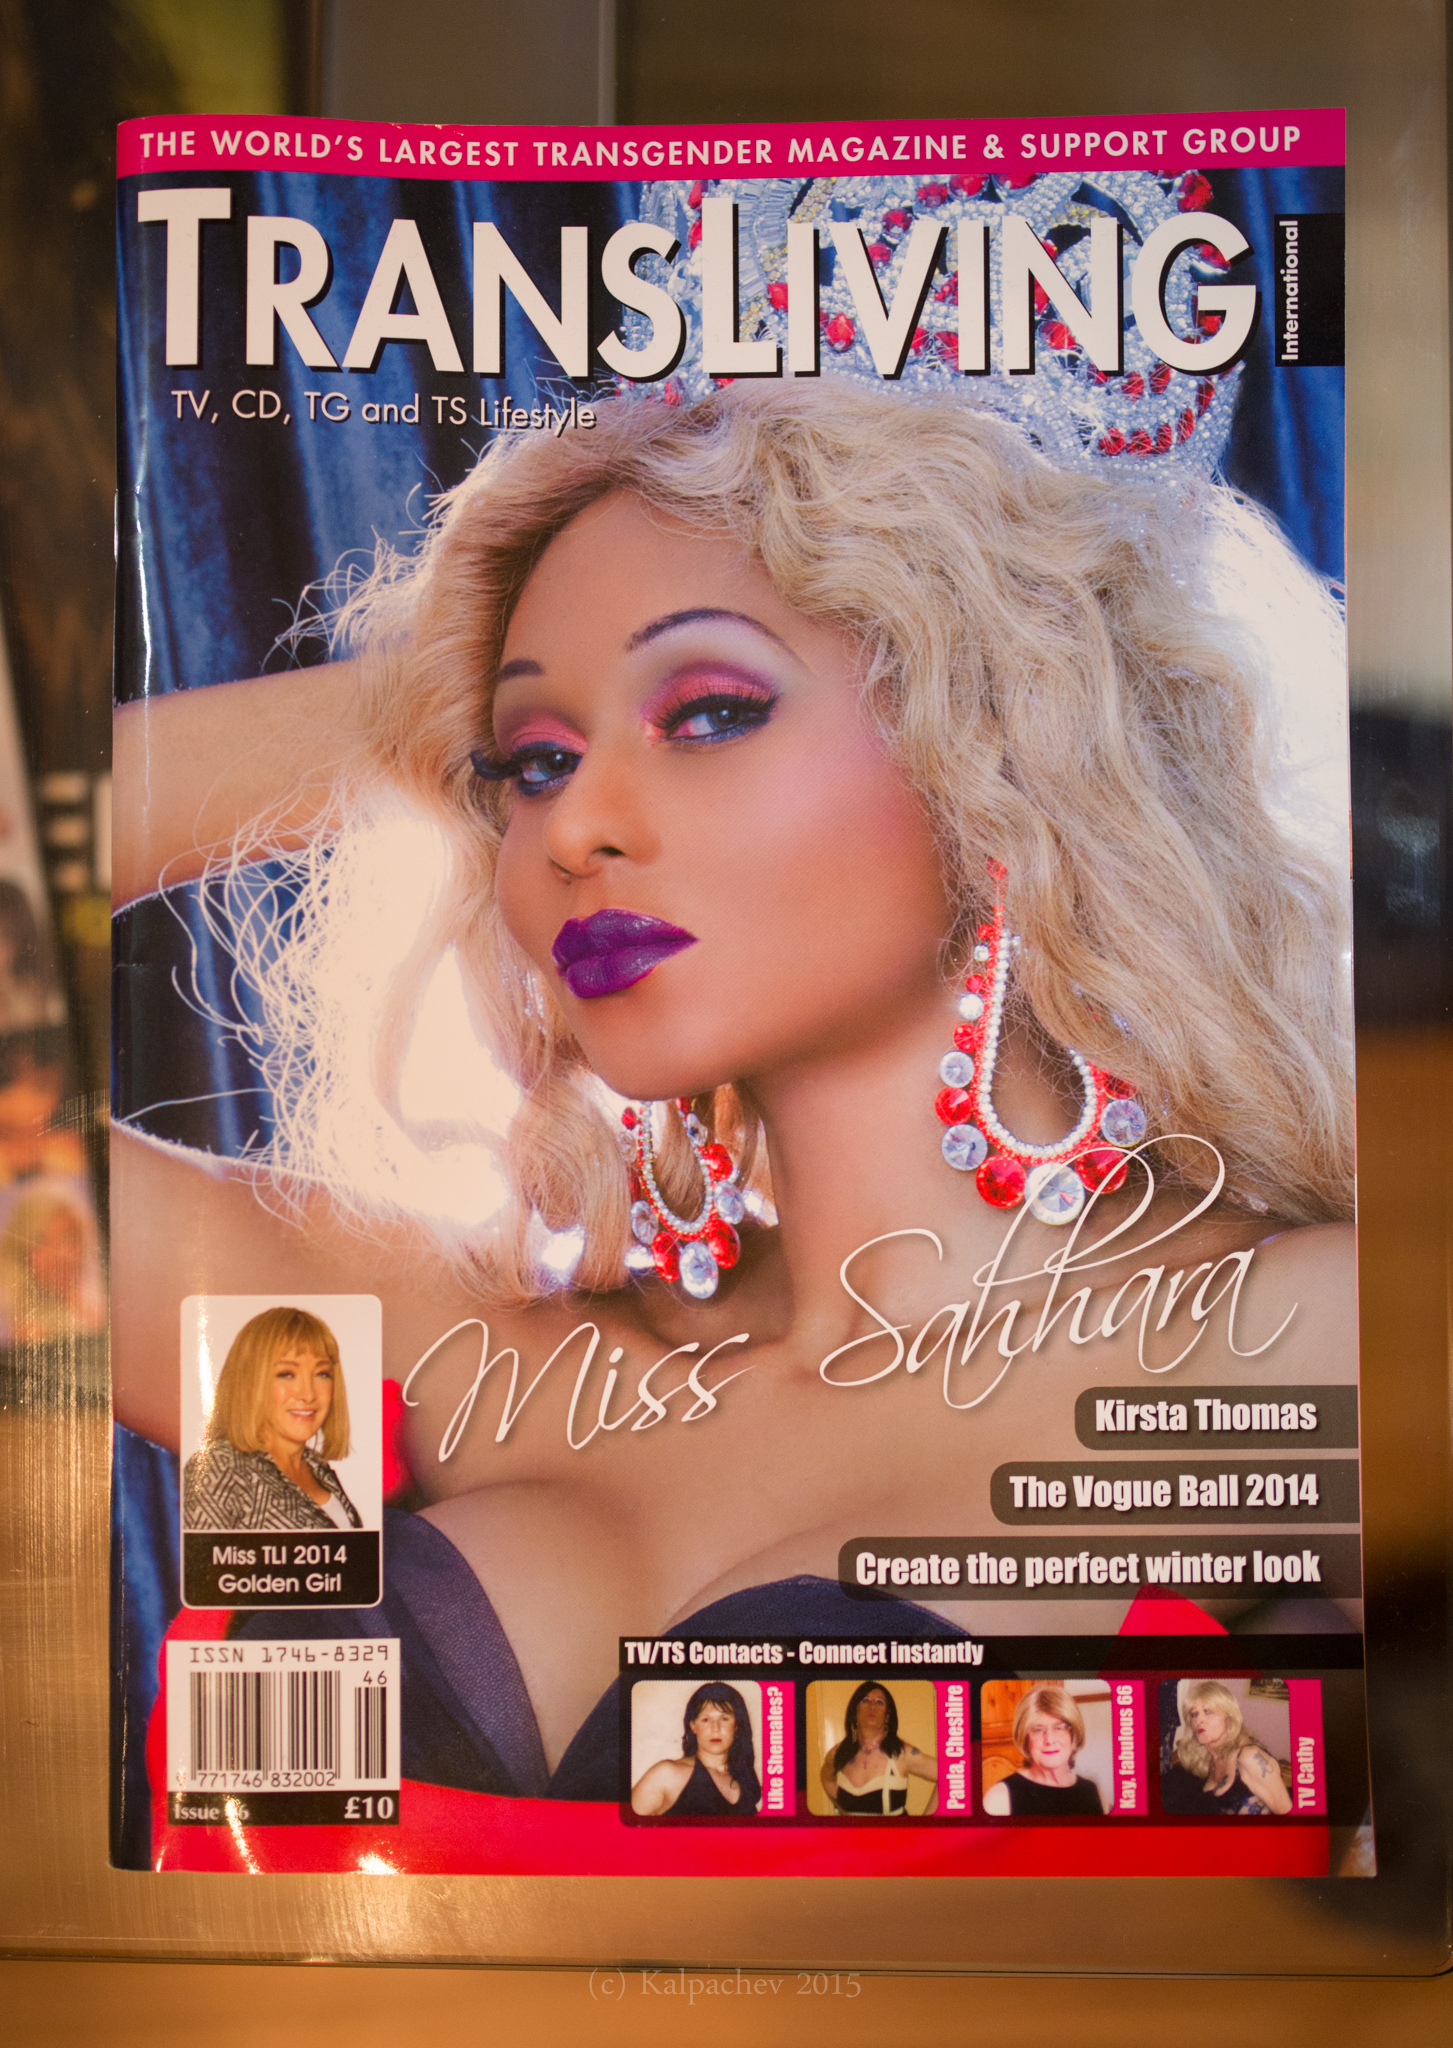 Transliving magazine London